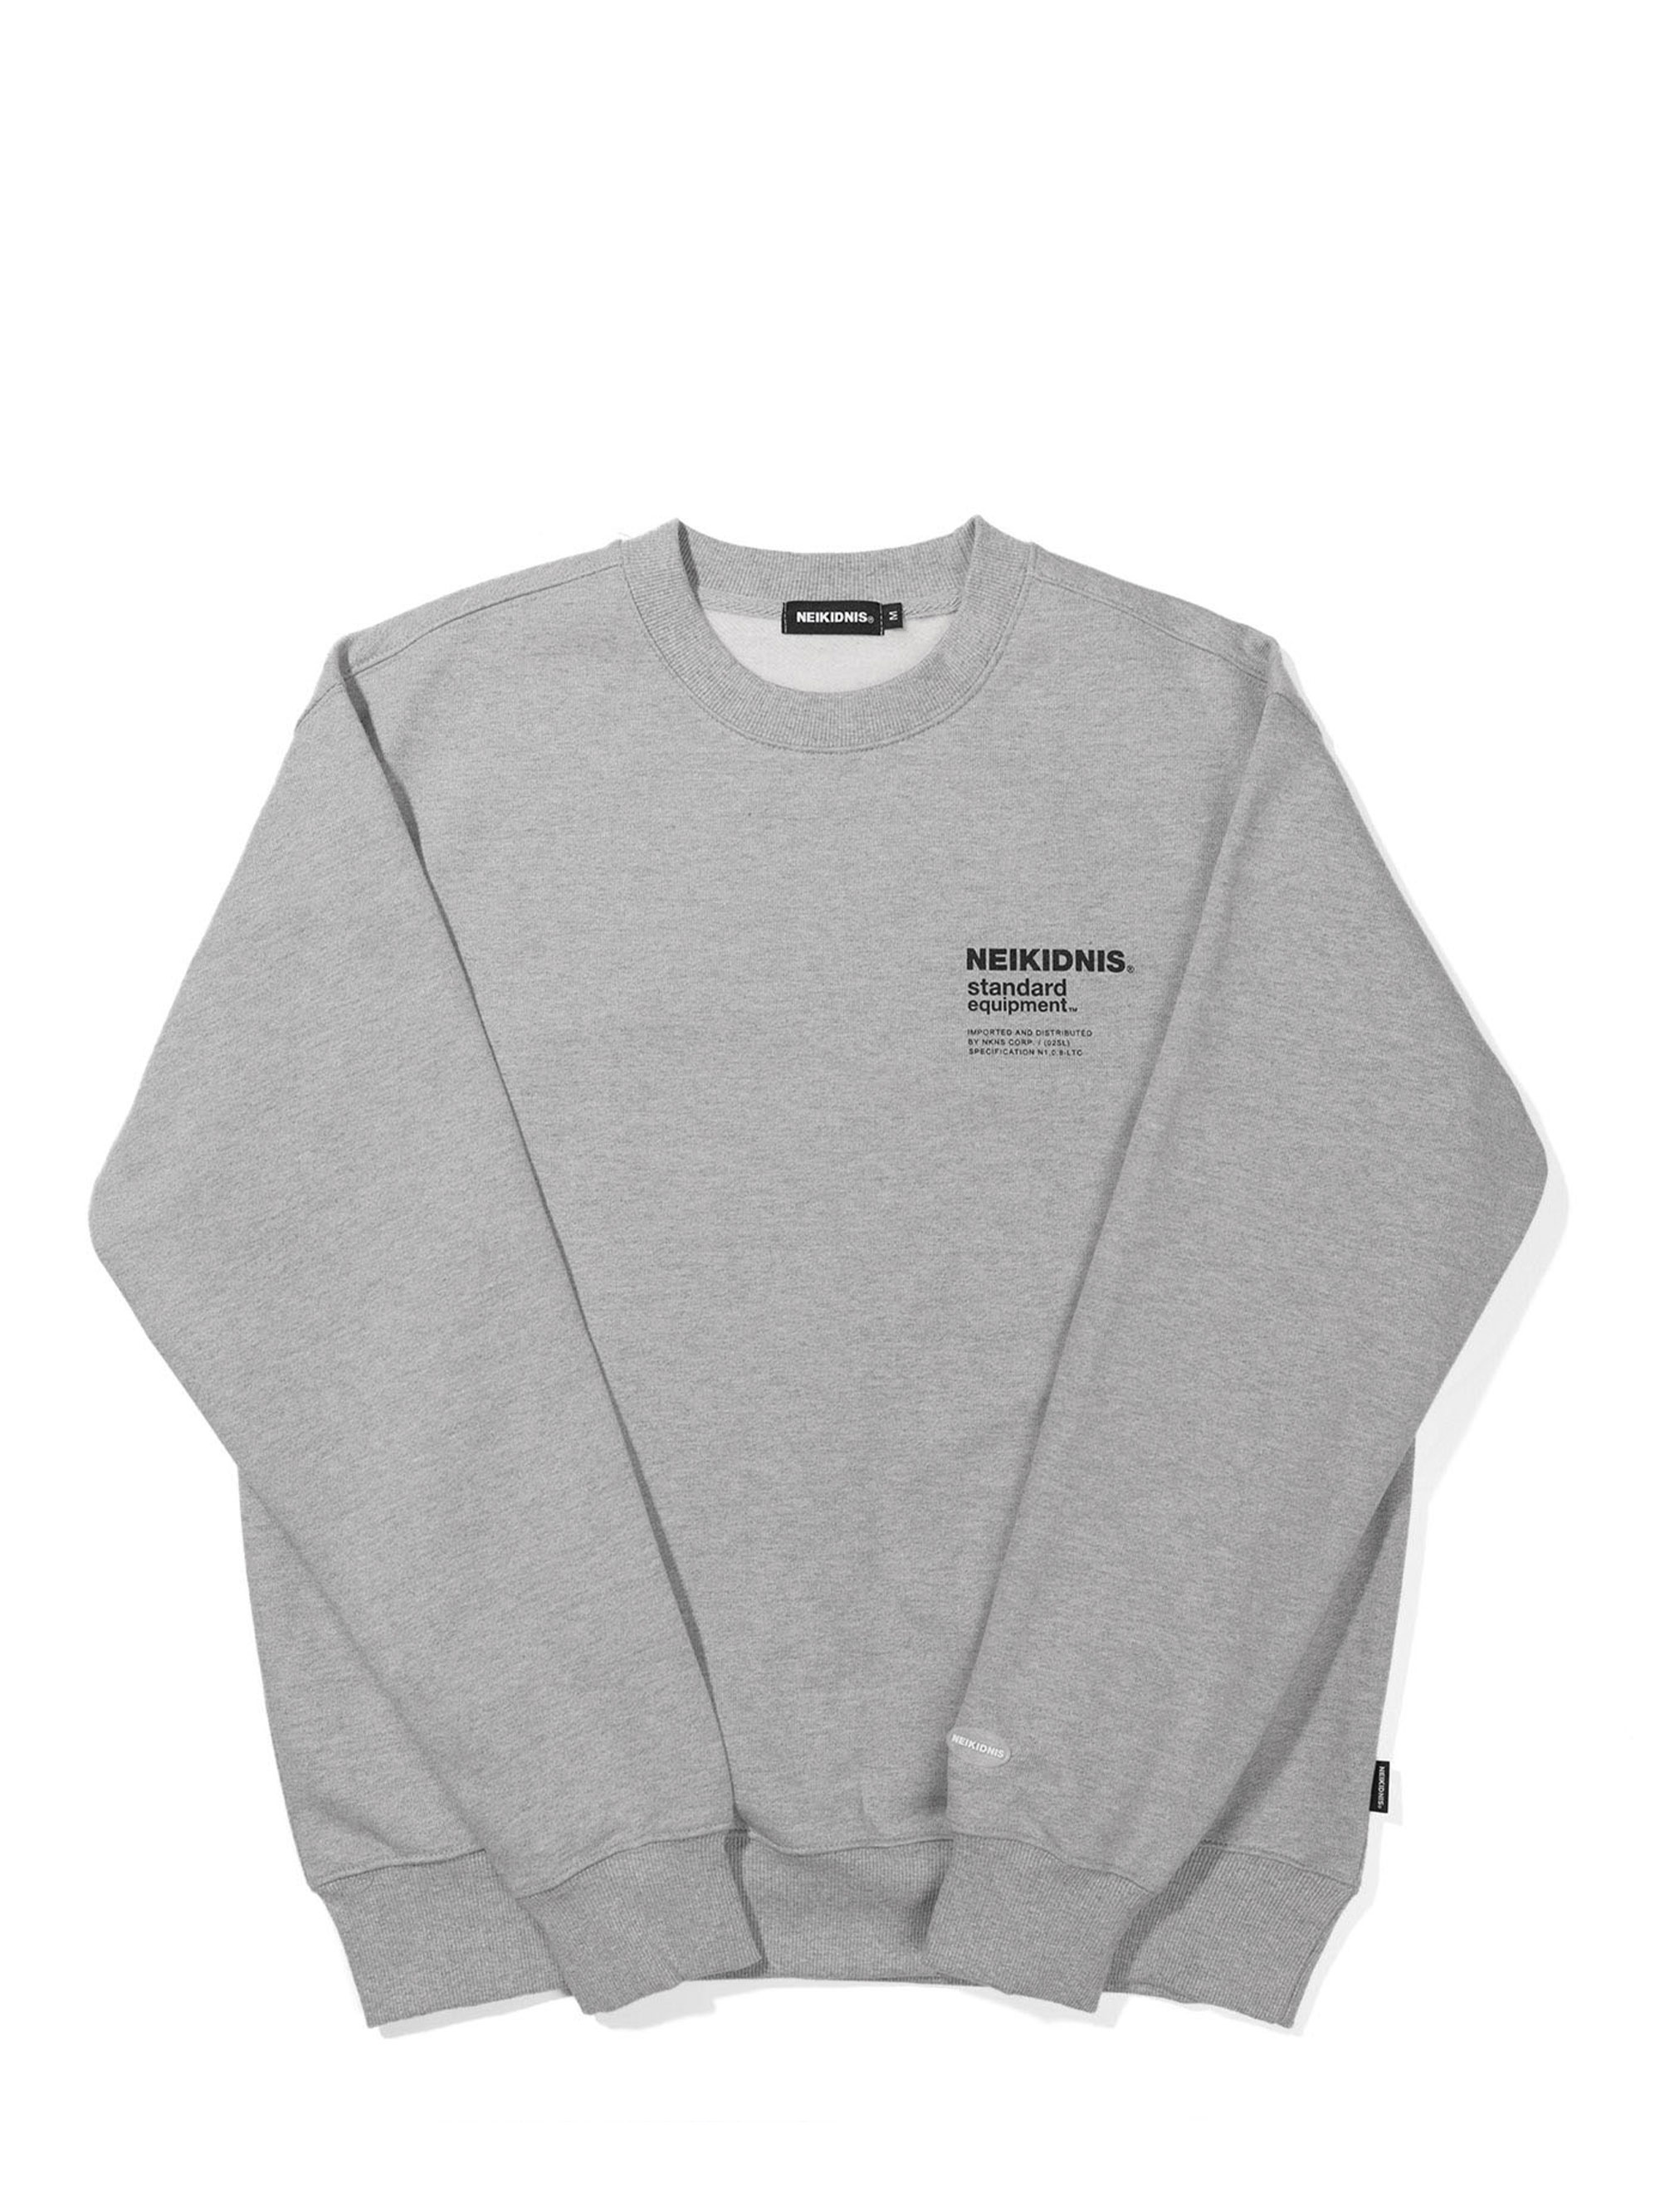 SPEC LOGO SWEAT SHIRT / GRAY